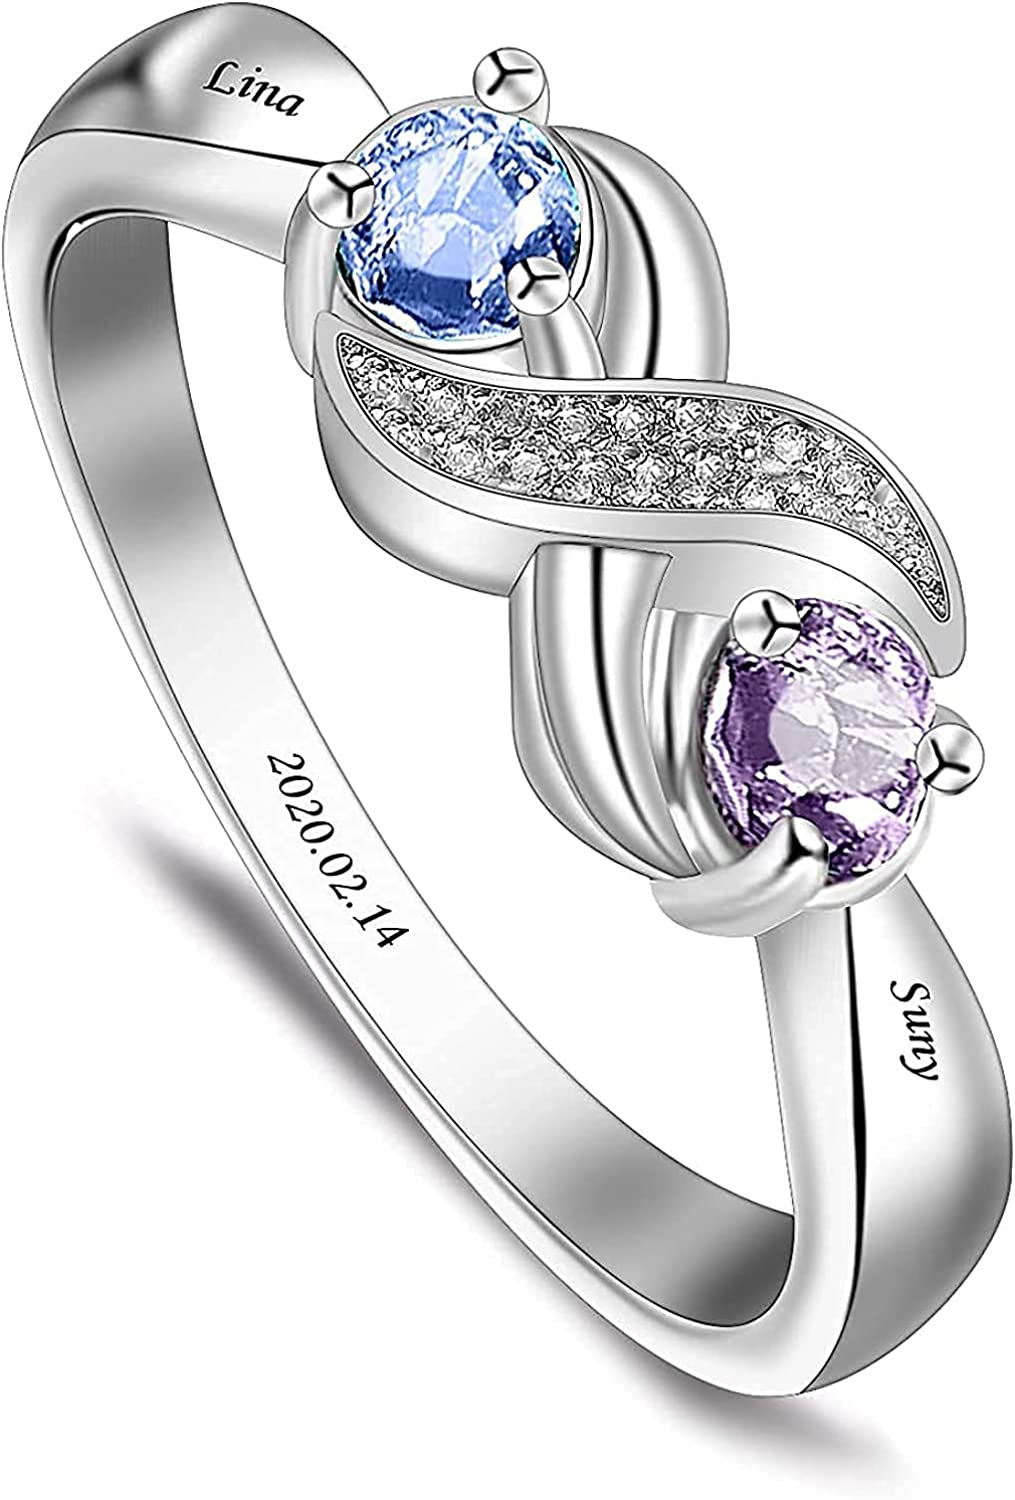 Personalized S925 Popular standard Max 65% OFF MotherFamily Rings with 2 6 3 4 5 Birthstones